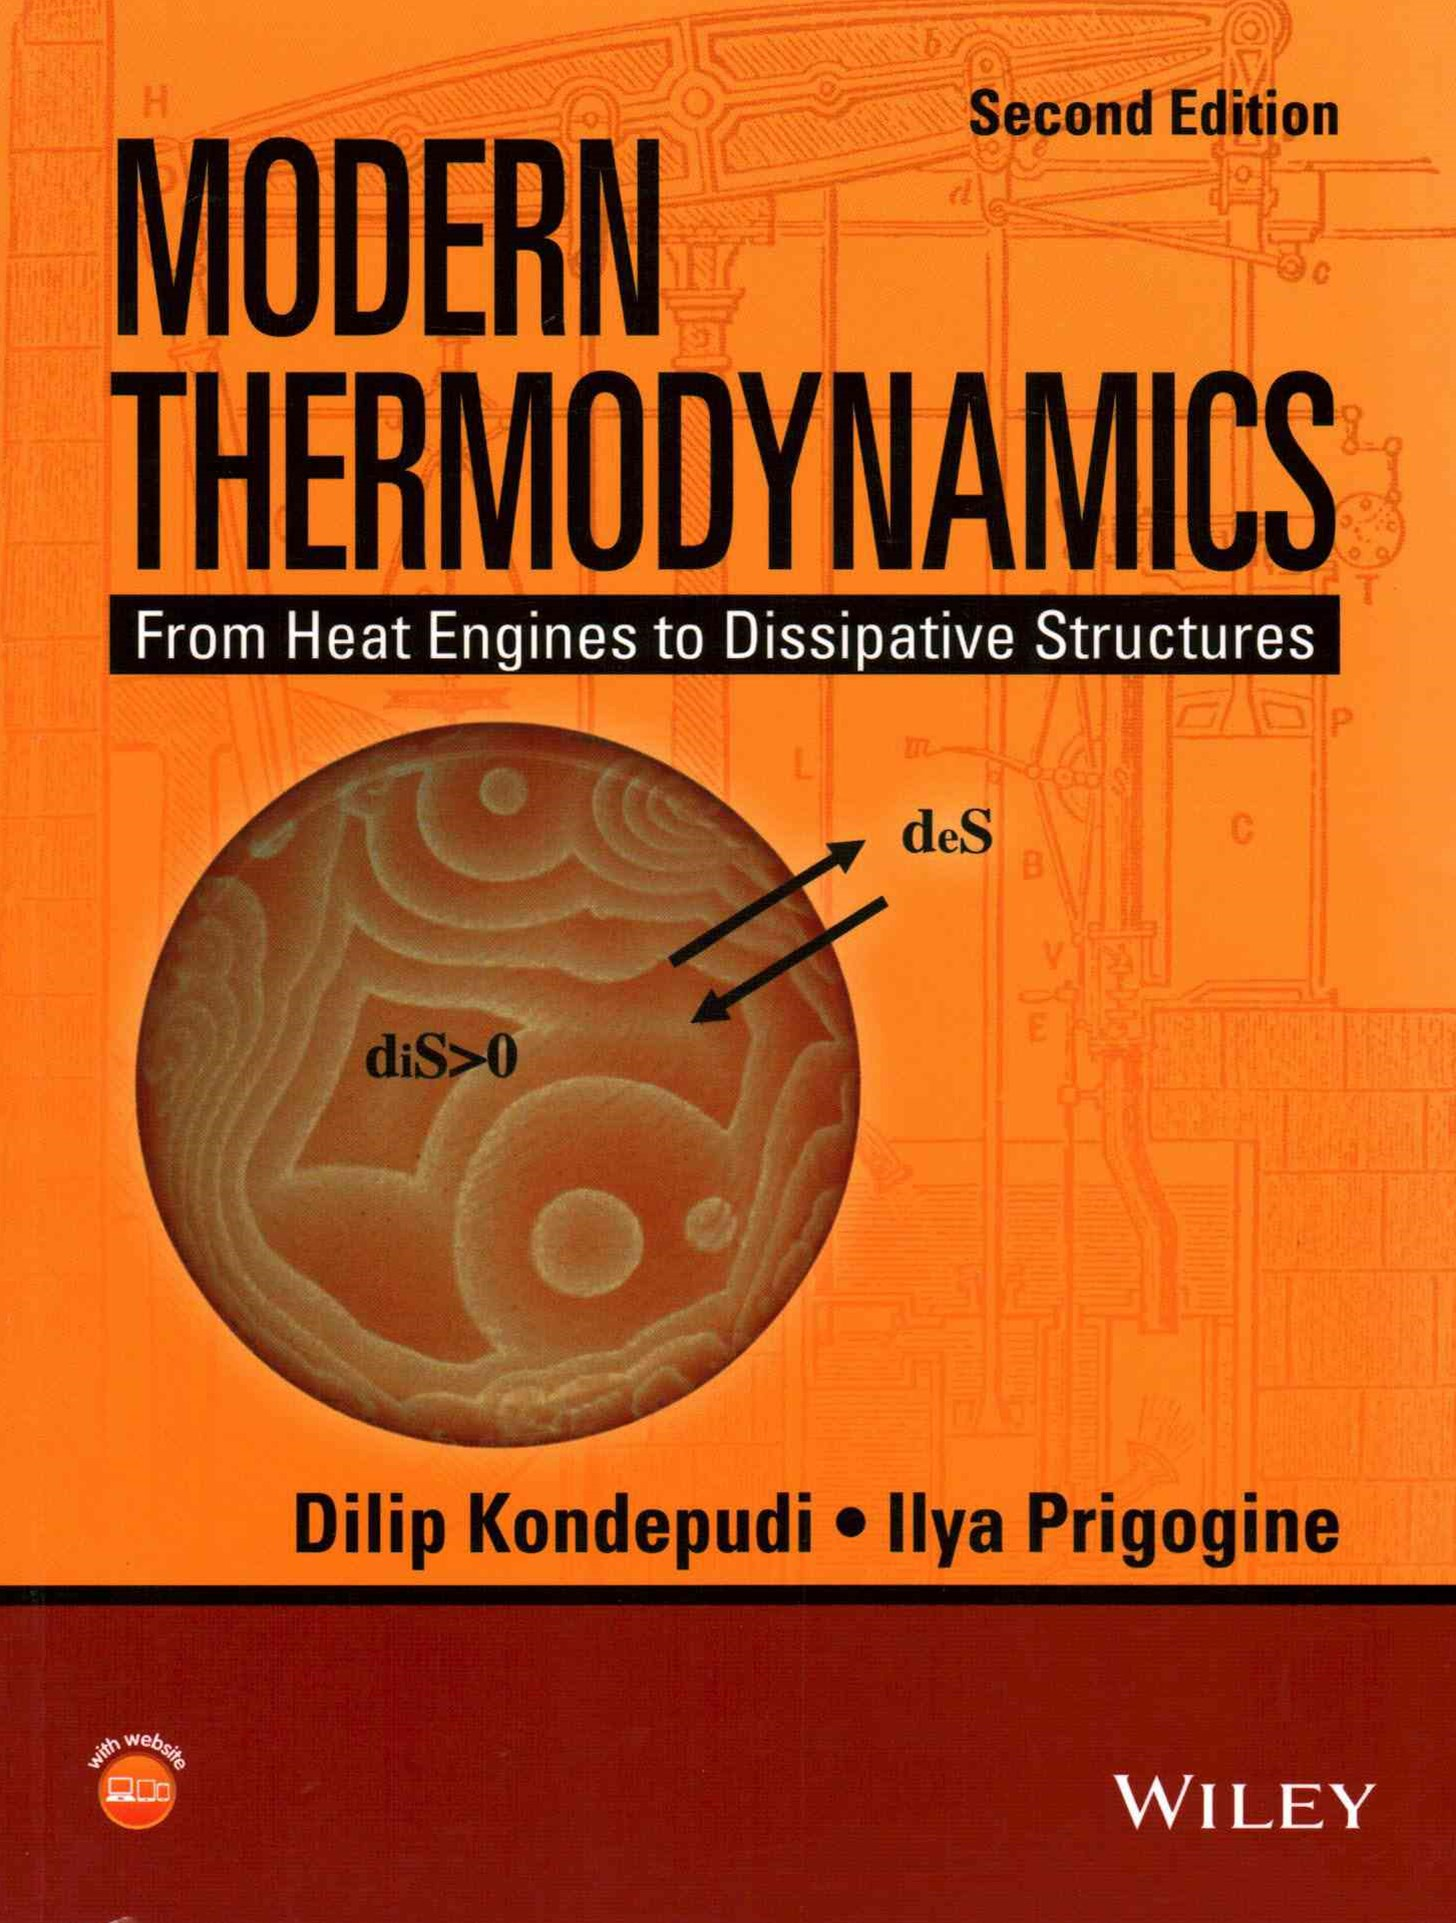 Modern Thermodynamics - From Heat Engines to      Dissipative Structures 2E